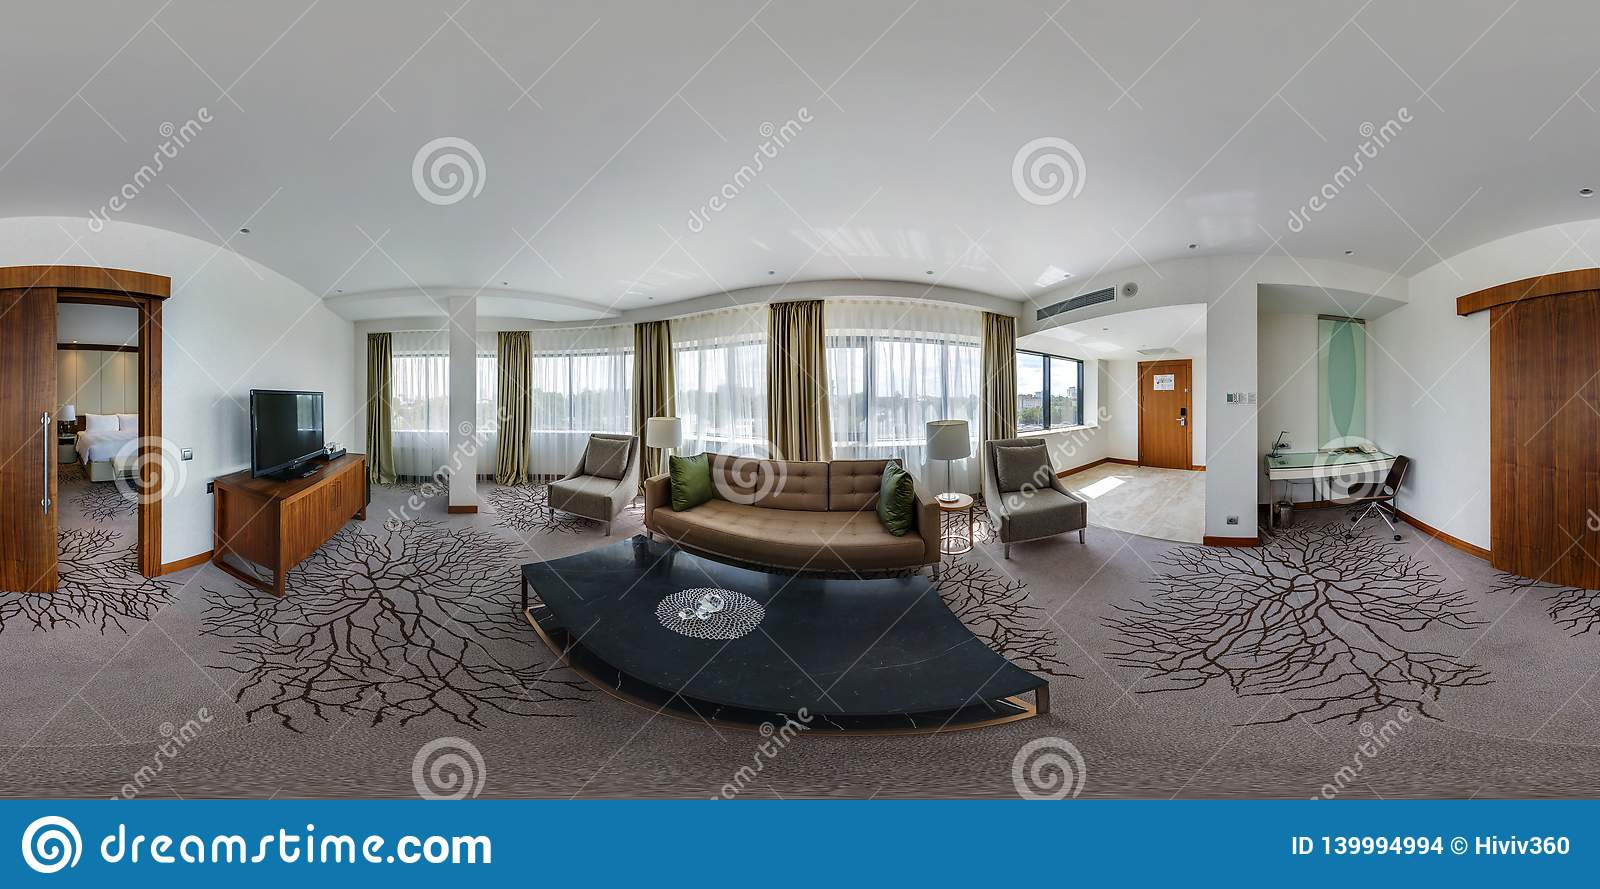 Minsk belarus august 2017 full seamless 360 degrees angle view panorama in interior guestroom hall with furniture in modern hotel in equirectangular